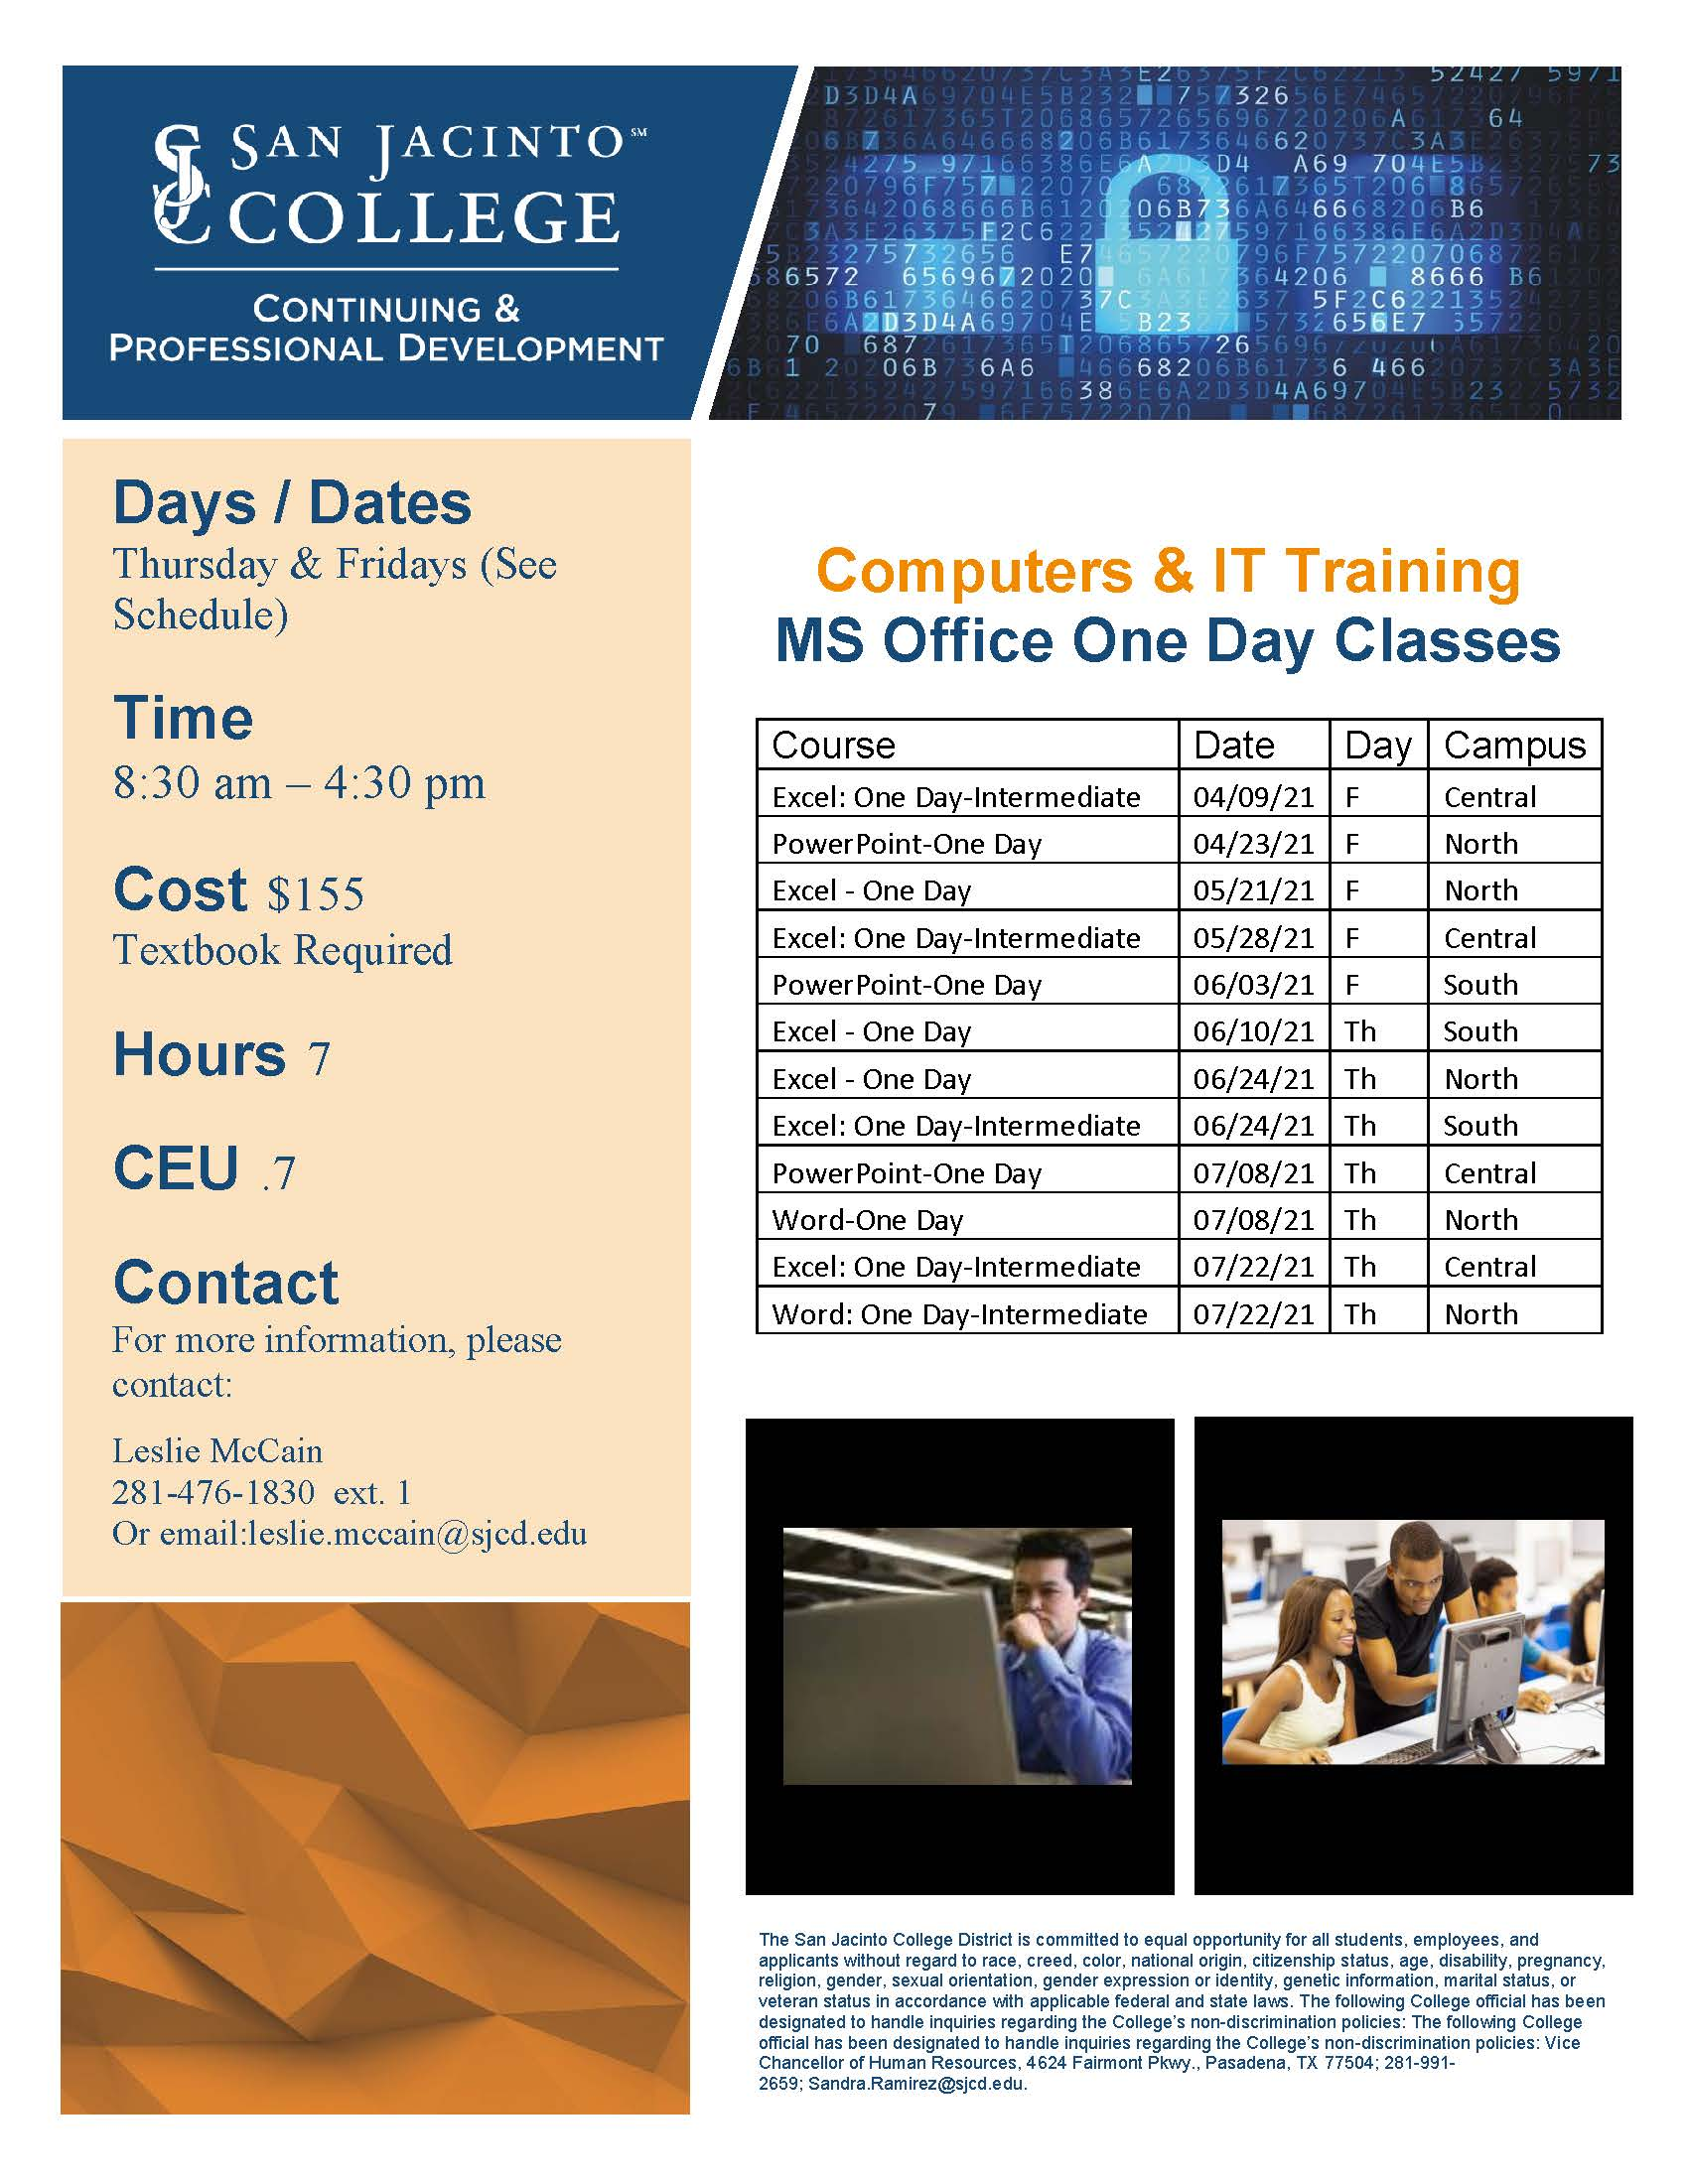 MS One Day Classes